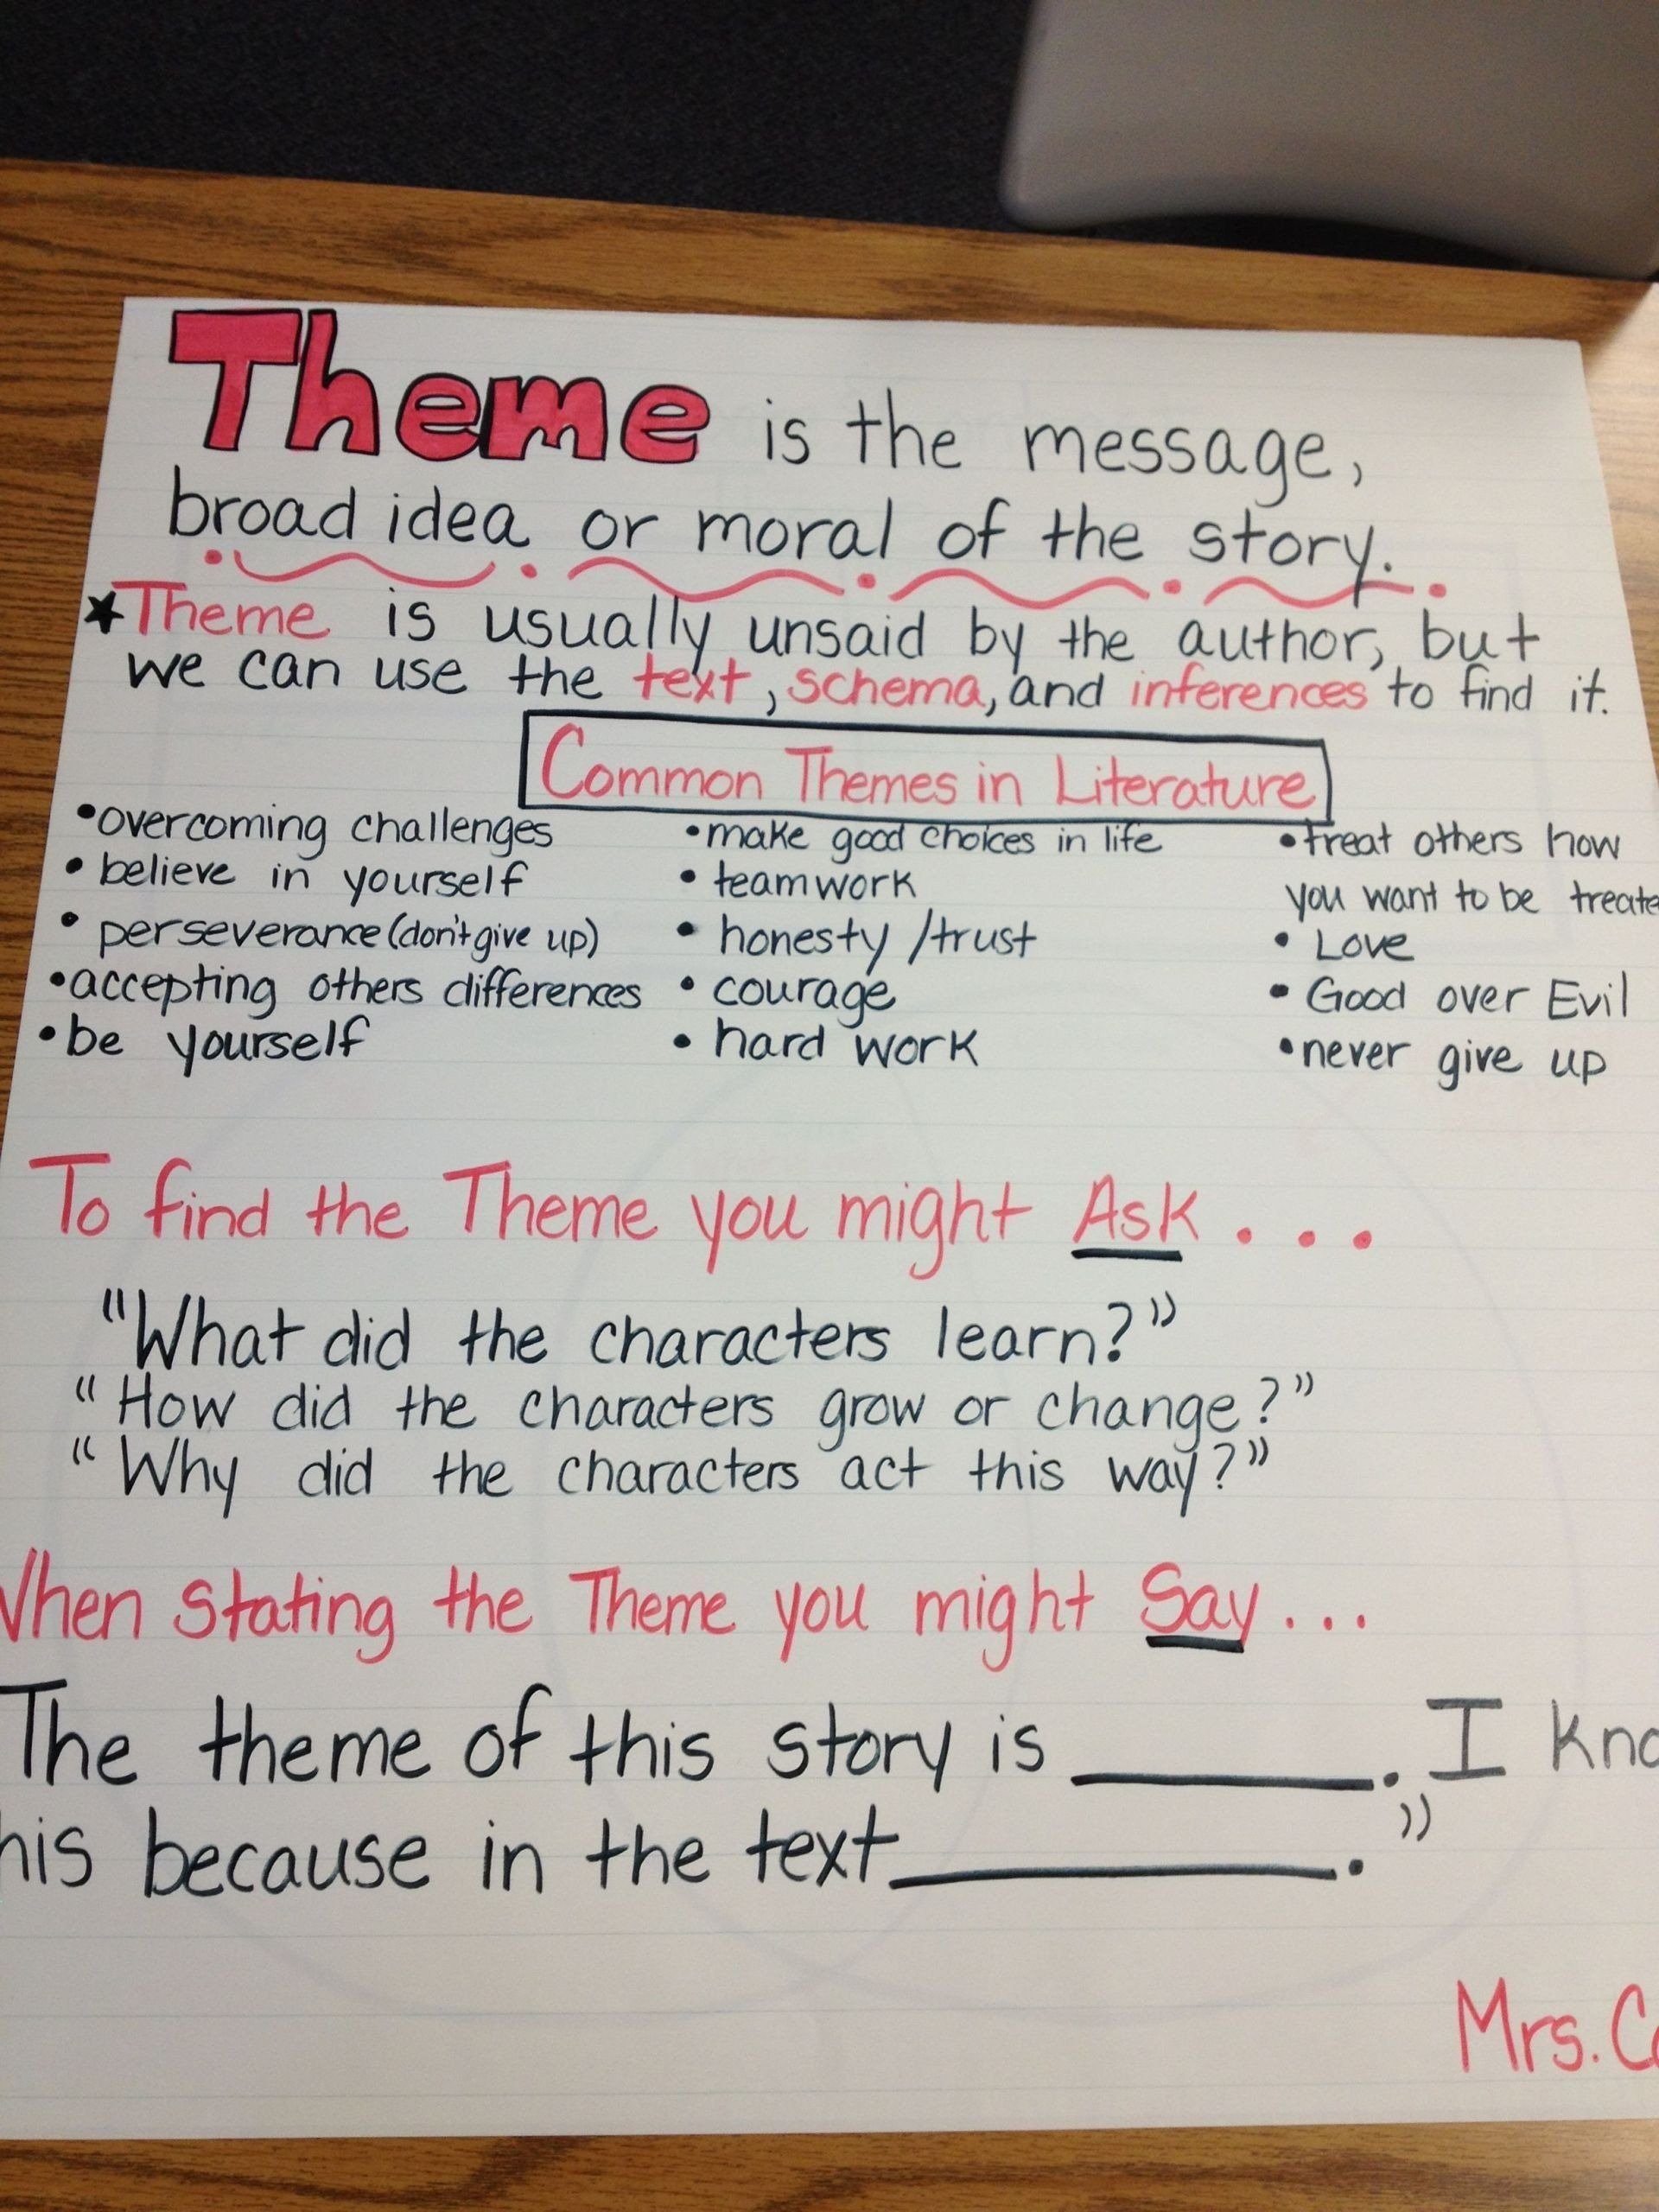 Theme Worksheet 4th Grade 6 Theme 4th Grade Reading Worksheets In 2020 In 2020 Theme Anchor Charts 4th Grade Reading Worksheets Anchor Charts